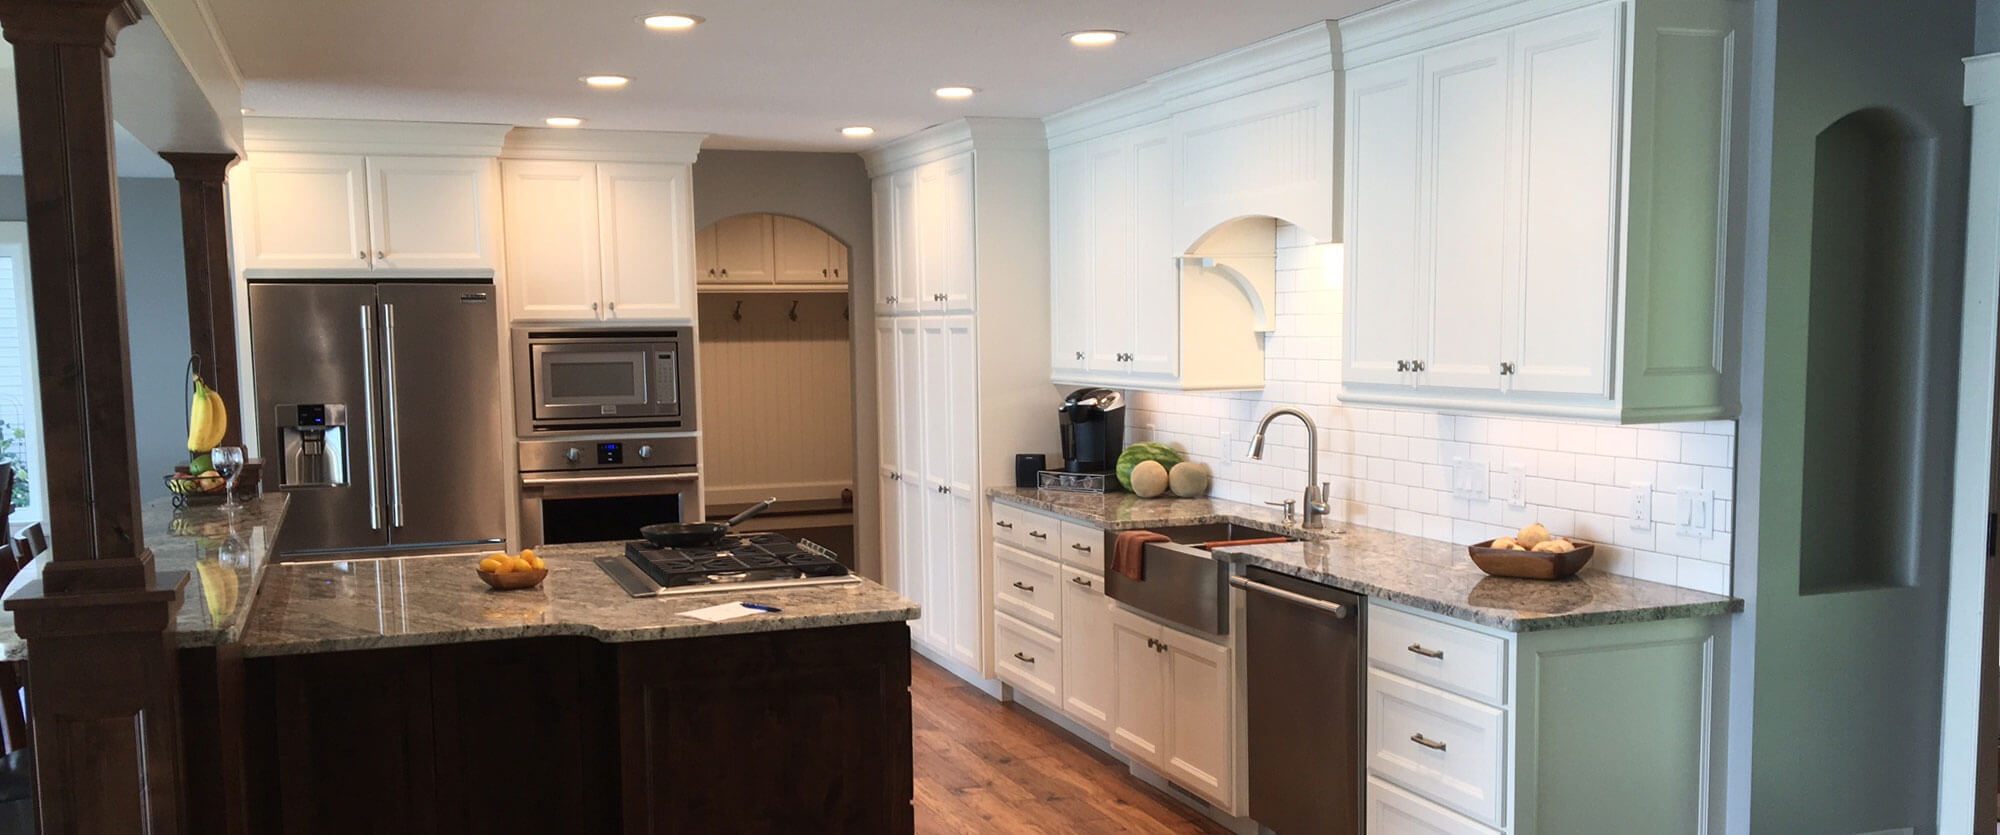 Custom kitchen cabinets made of solid wood and painted white; designed, built, and installed by finewood Structures of Browerville, MN